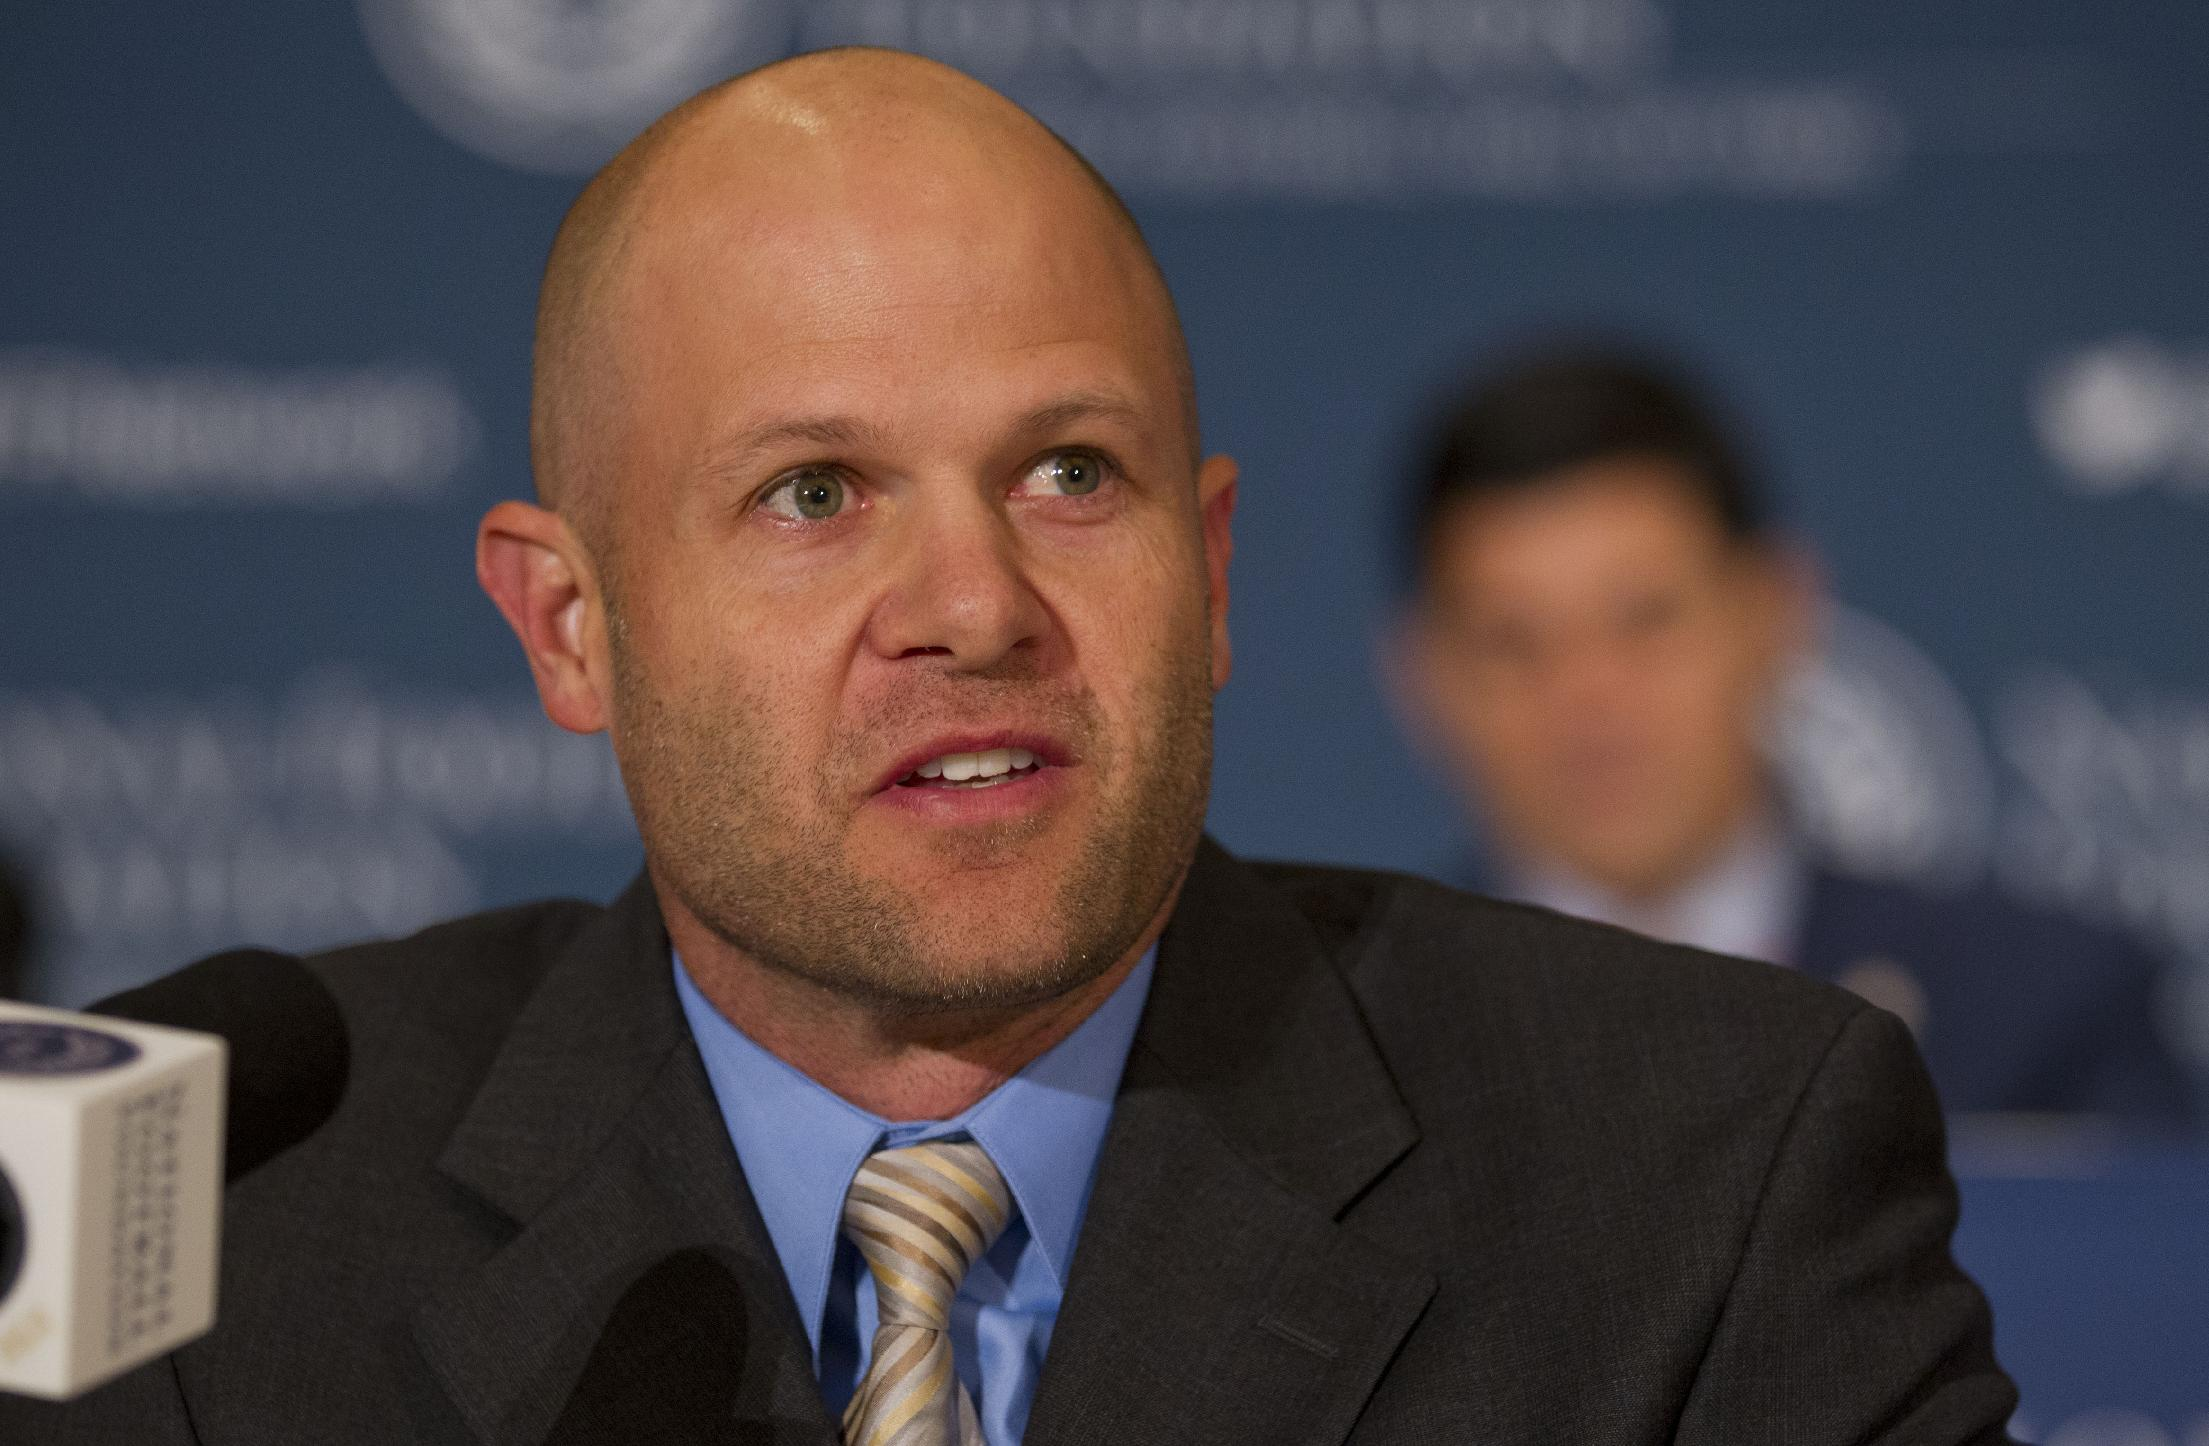 College Football Hall of Fame inductee Danny Wuerffel, a quarterback from Florida, speaks during the 56th National Football Foundation Annual Awards ceremonies on Tuesday, Dec. 10, 2013 in New York